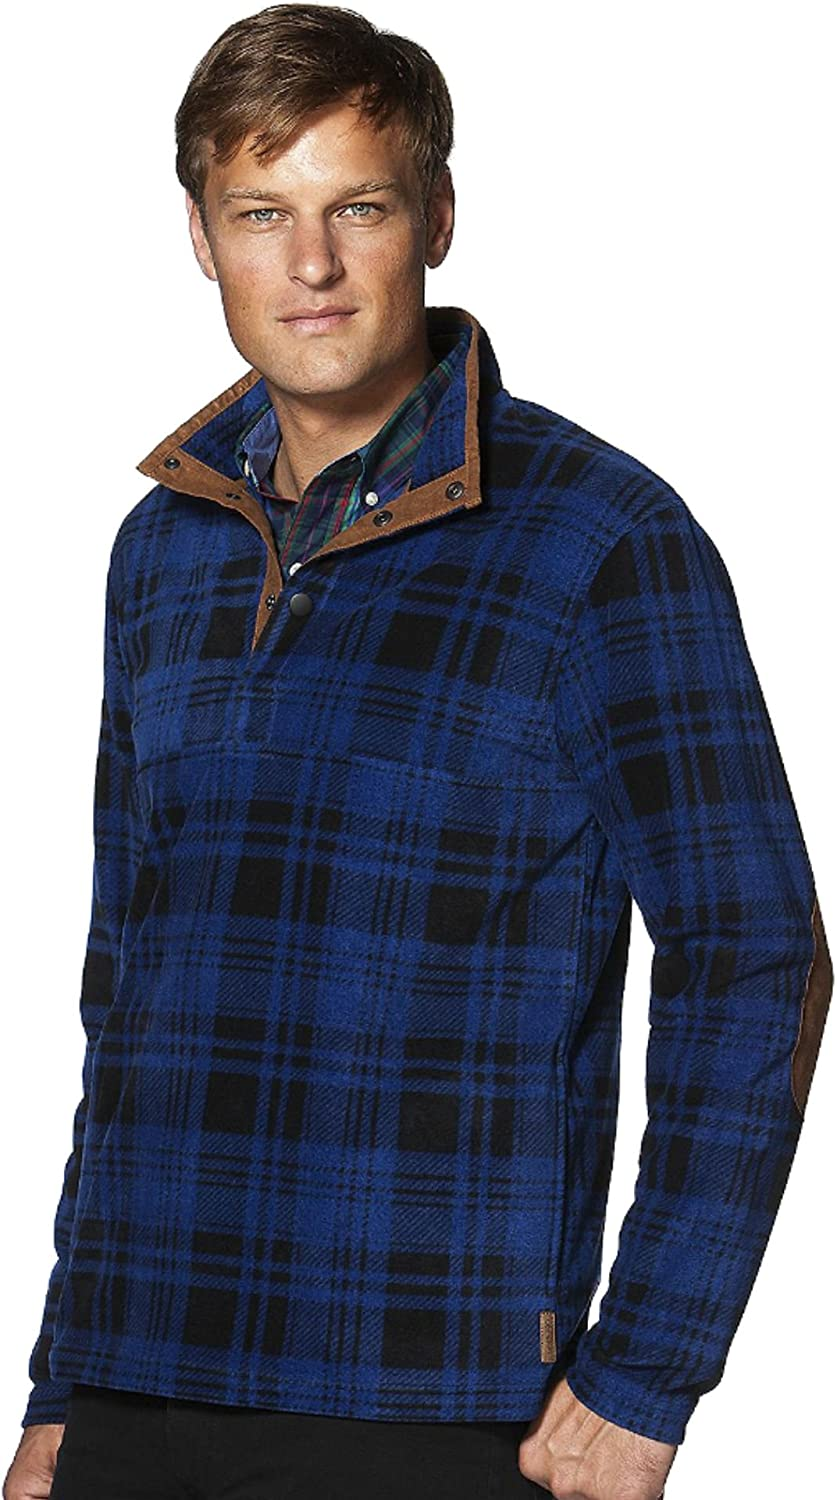 Chaps Men's Big and Tall Classic Fit Plaid Microfleece Pullover